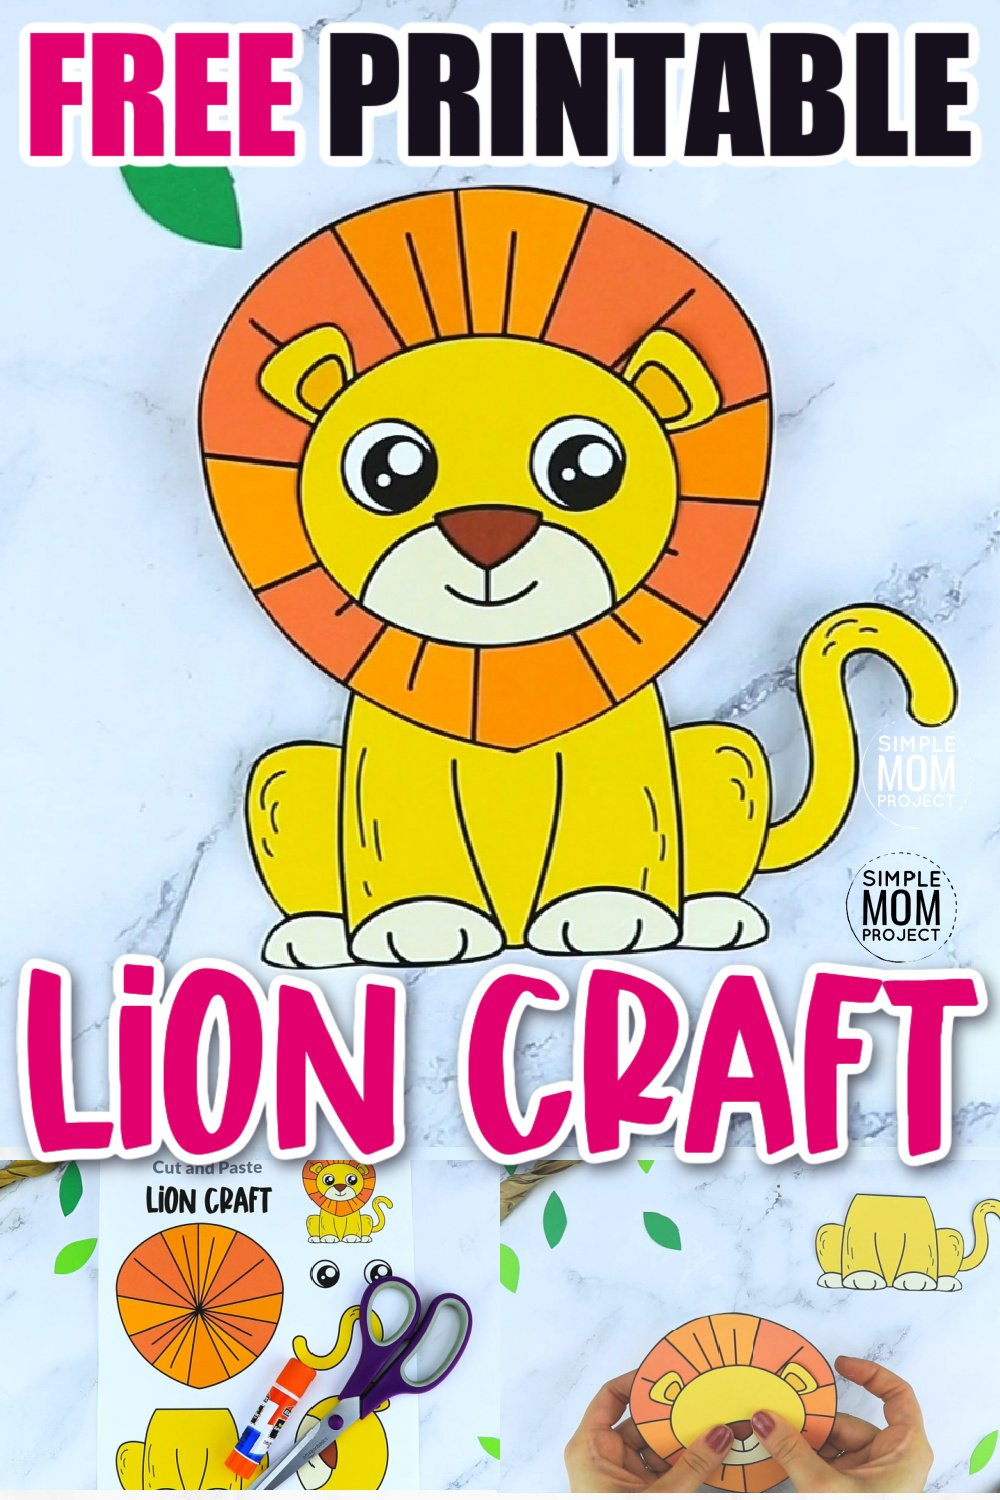 Are you looking for a fun and easy way to teach the letter L to your preschool, kindergarten or even toddler age kids? Use this fun lion craft to do it! It is perfect for cutting practice while you watch Daniel the Lion too! This diy lion craft template can also be glued to a paper plate or paper bag and turned into a fun art puppet.